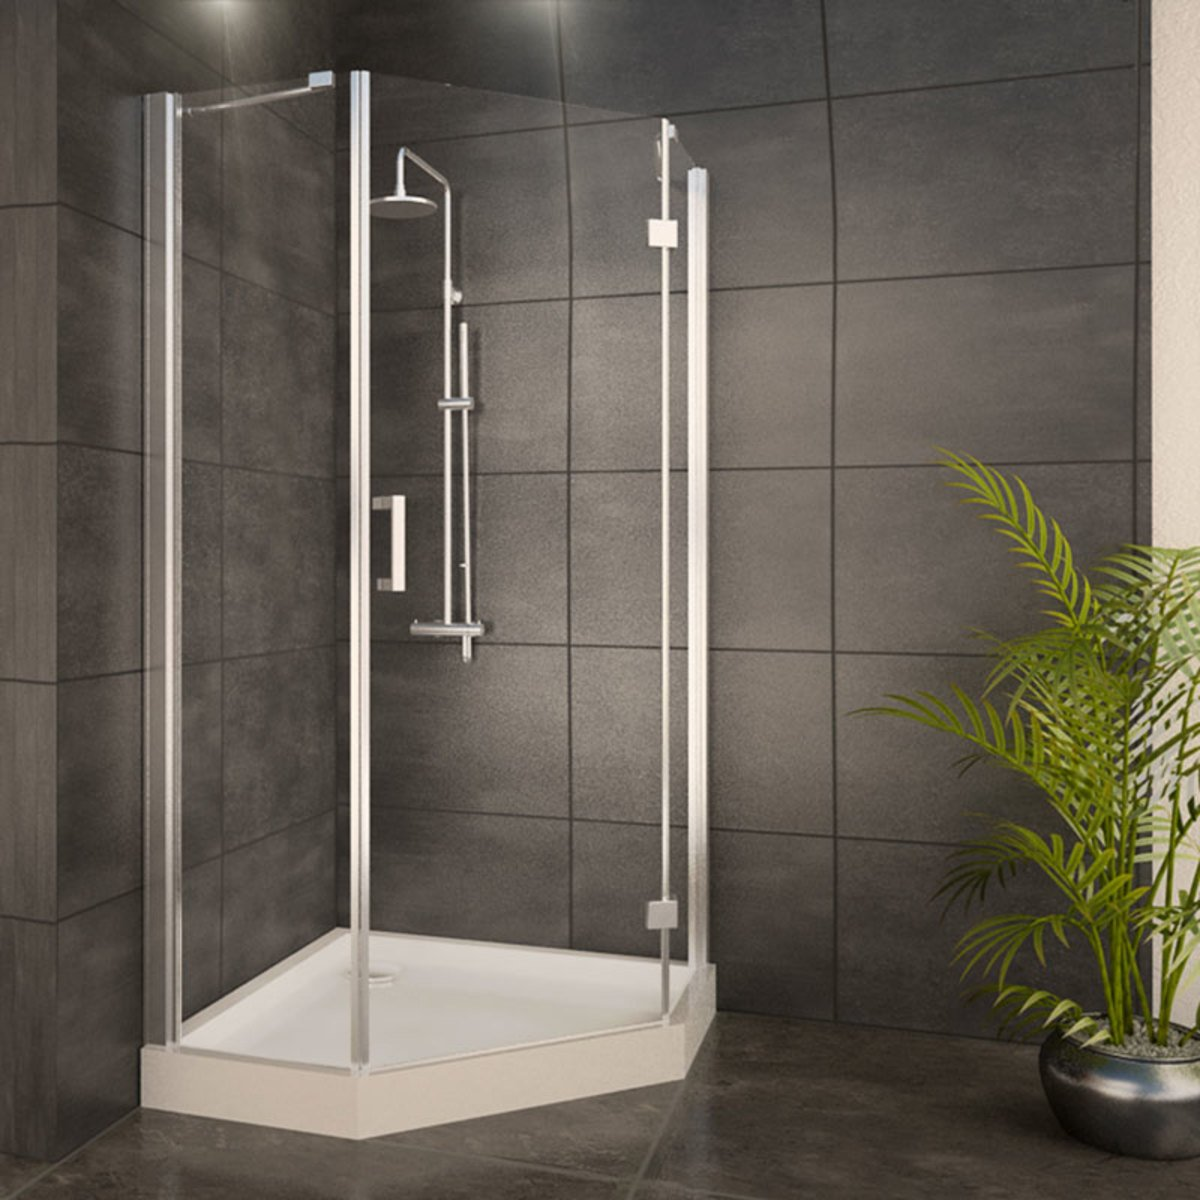 adema glass cabine de douche pentagone avec 1 porte pivotante 90x90x200cm vitre claire avec. Black Bedroom Furniture Sets. Home Design Ideas